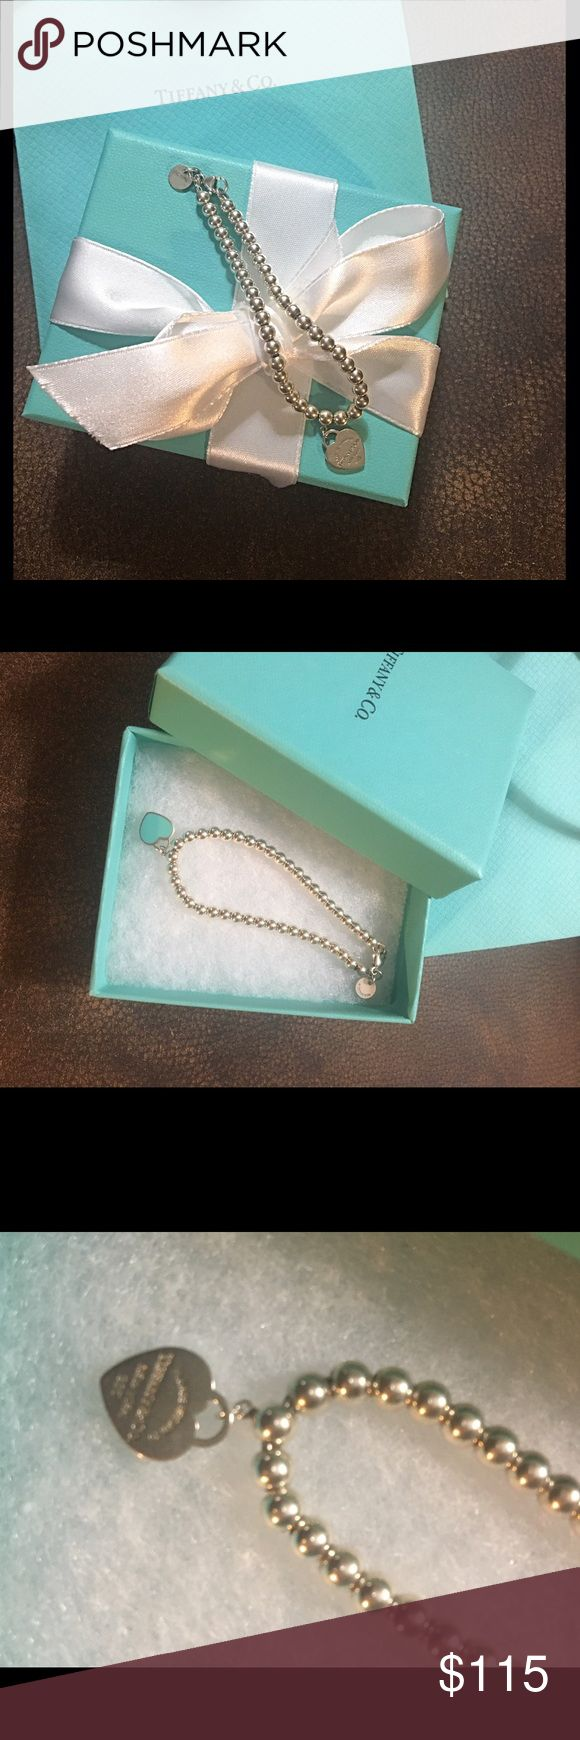 Tiffany Bracelet In Perfect Condition